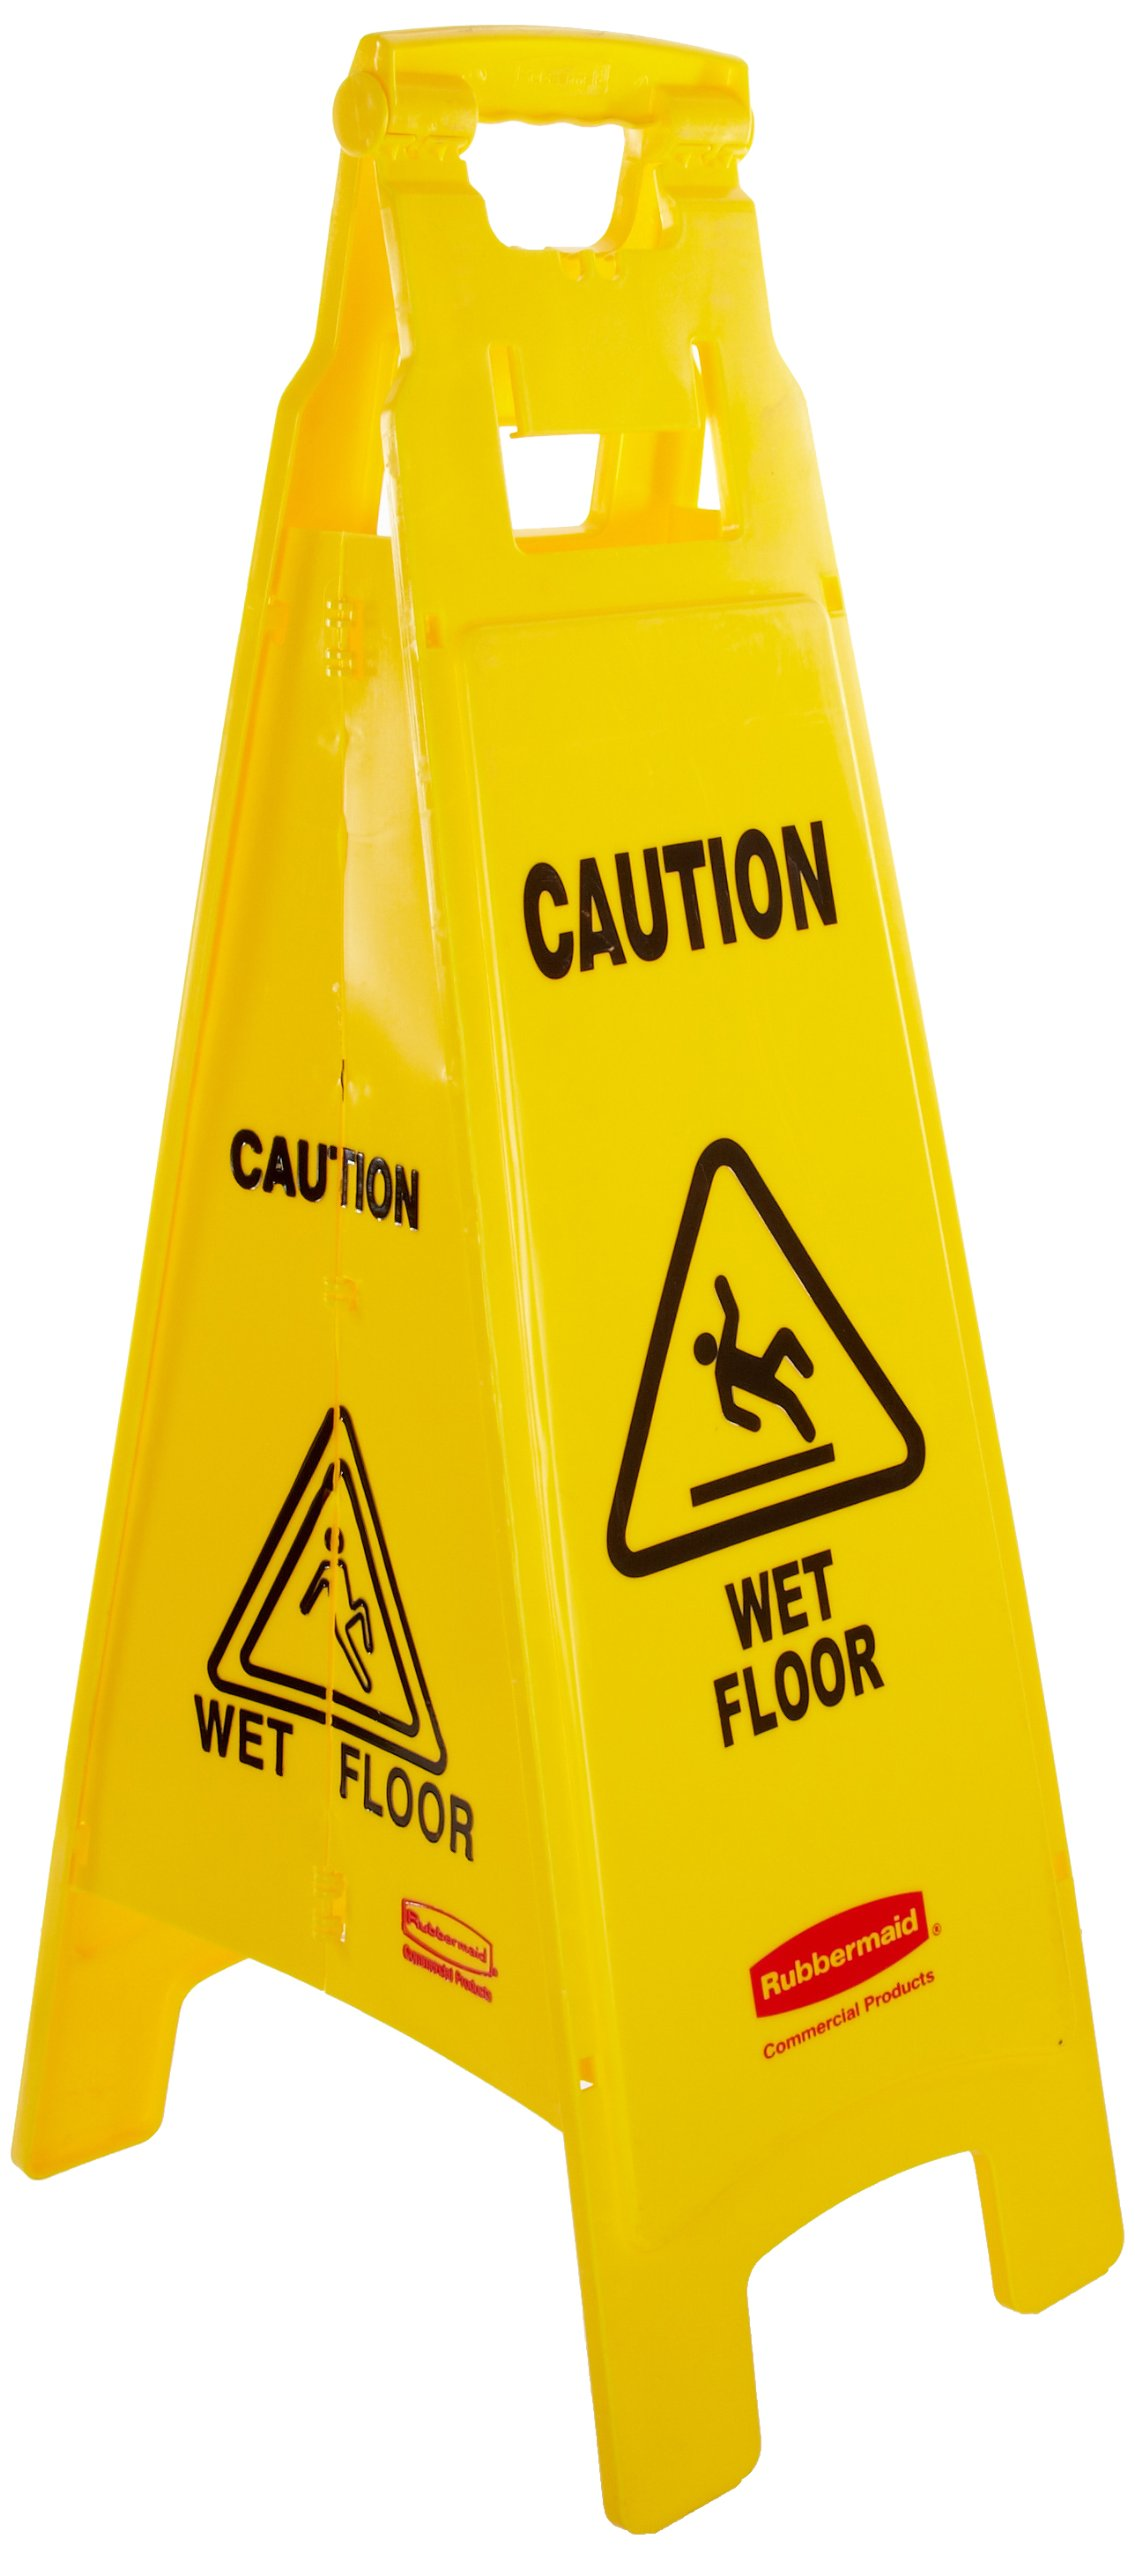 Rubbermaid Commercial 38 Inch ''Caution Wet Floor'' Floor Sign, 4-Sided, Yellow (FG611477YEL)